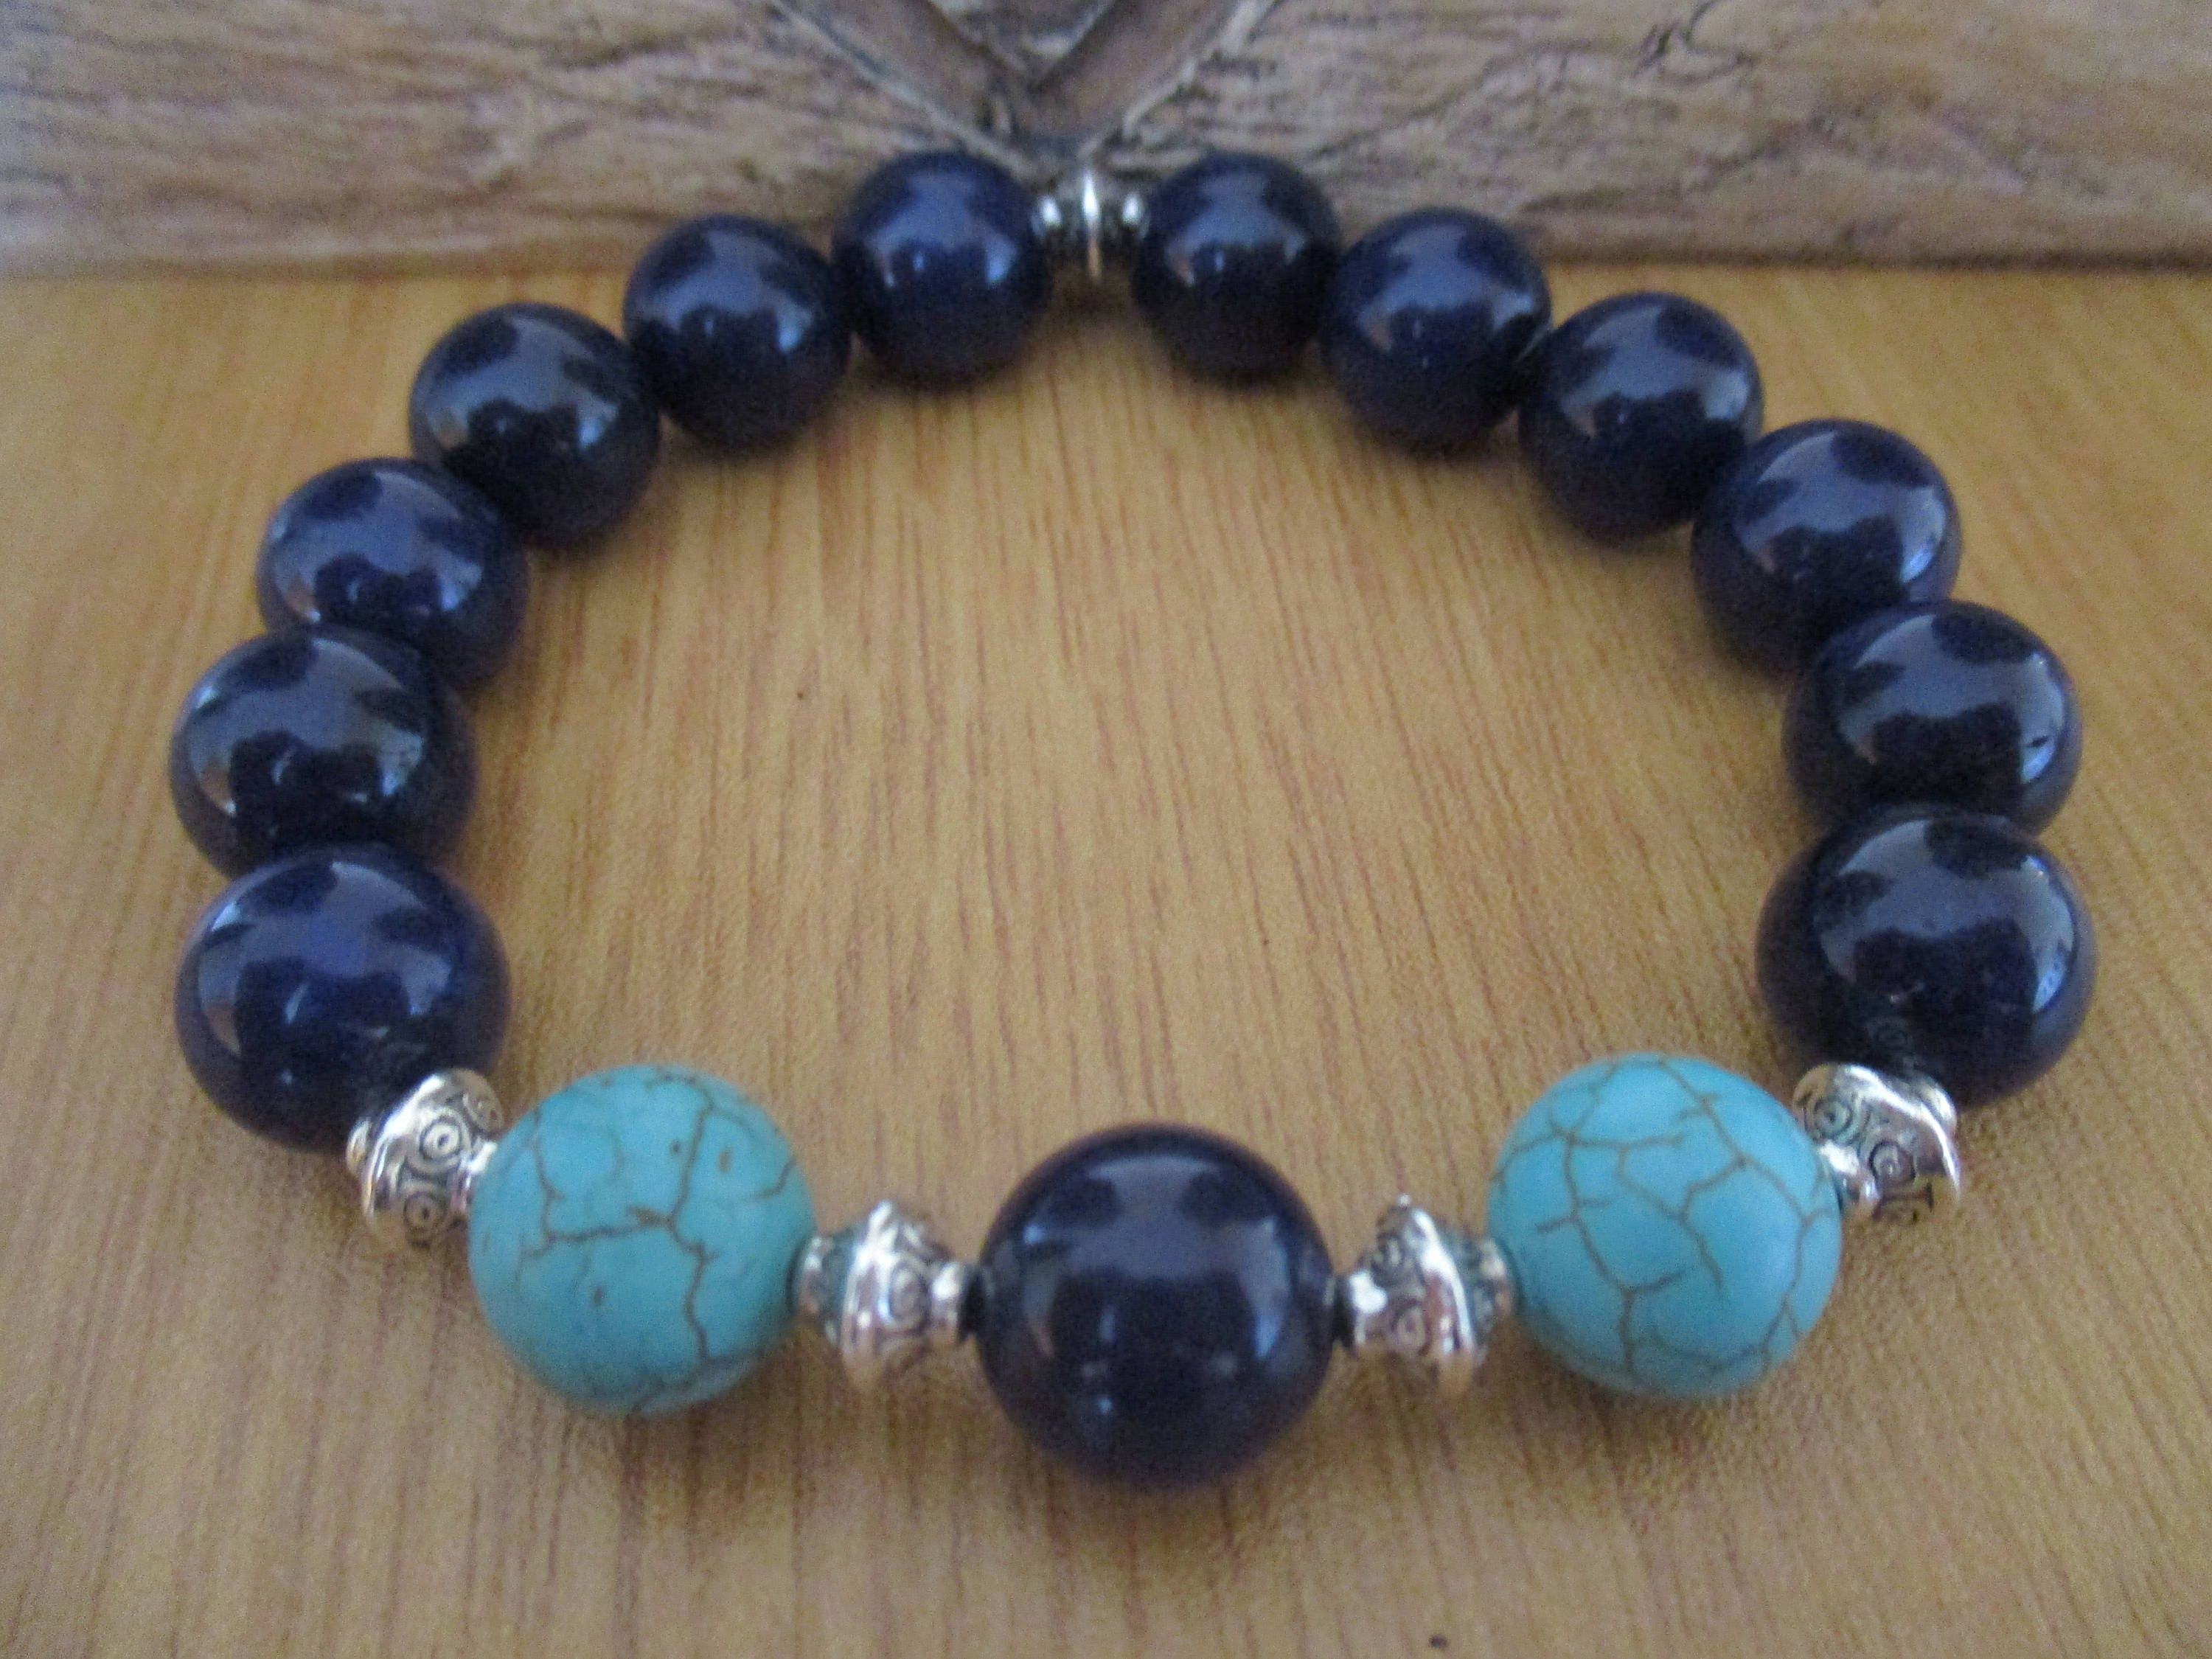 Mens Bracelet with Blue Turquoise Gemstone Beads Blue Agate and Silver Coloured Tibtan Bicone Beads